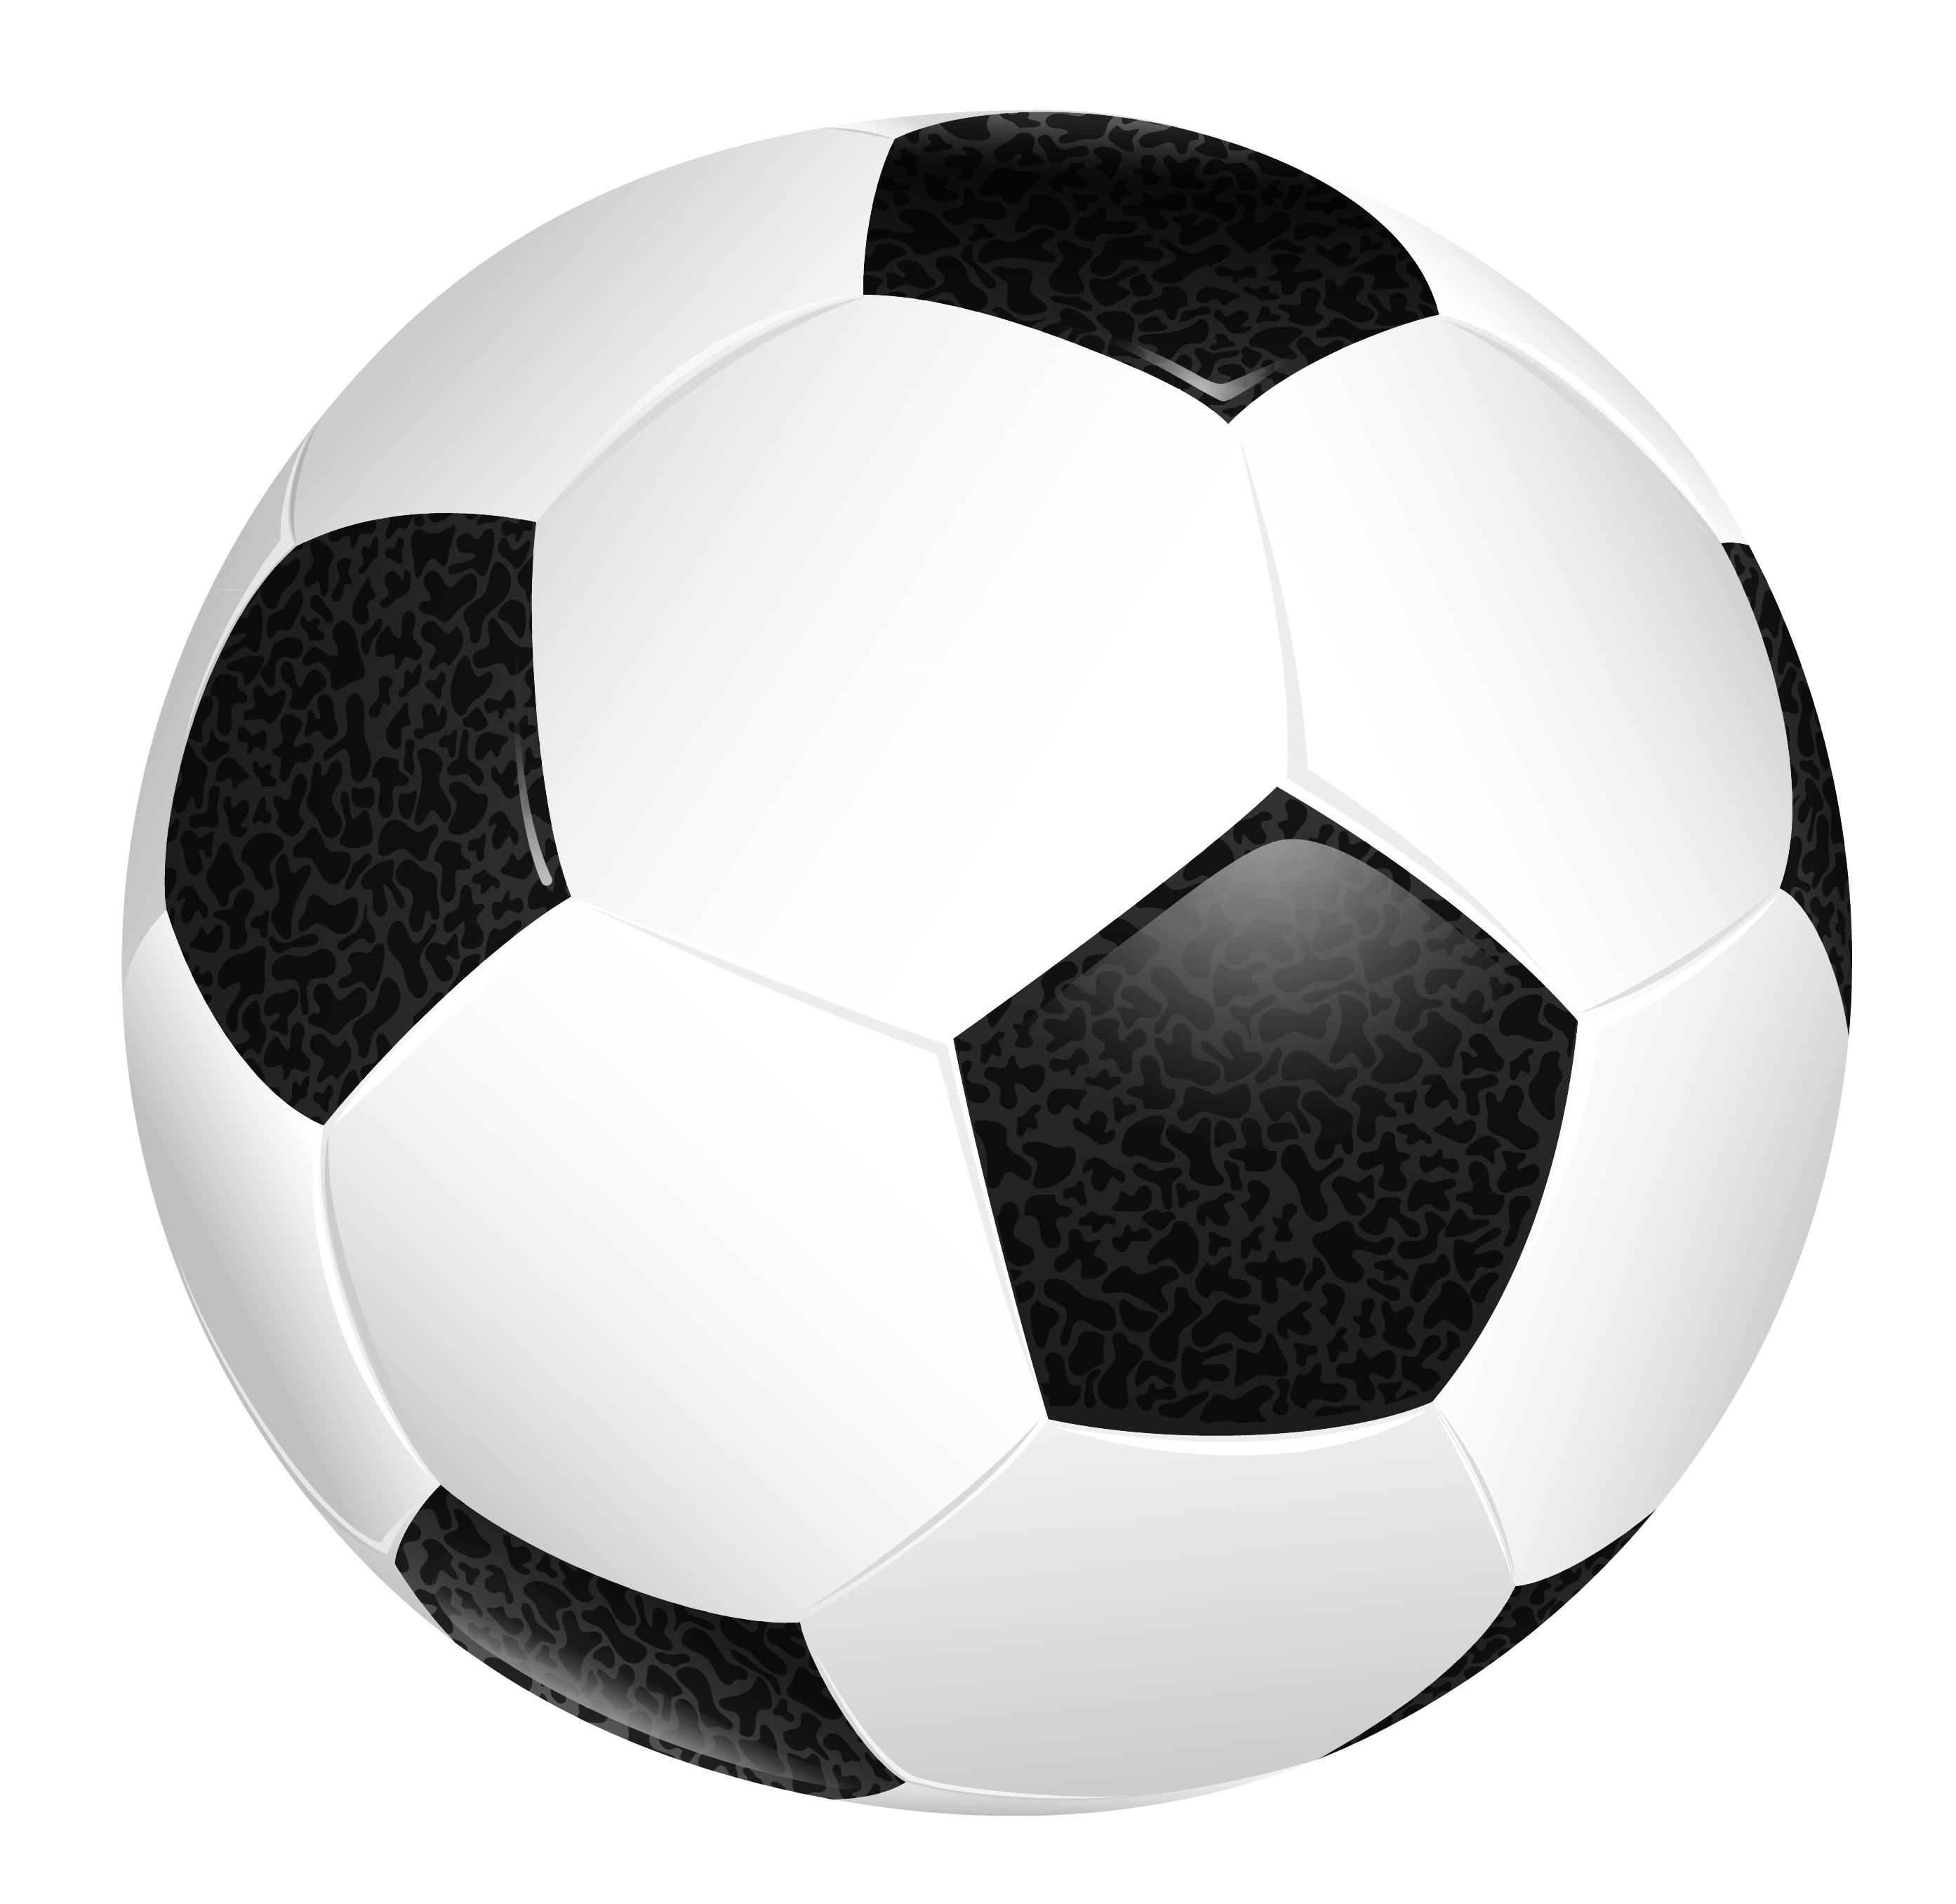 Soccer png gallery yopriceville. Ball clipart transparent background